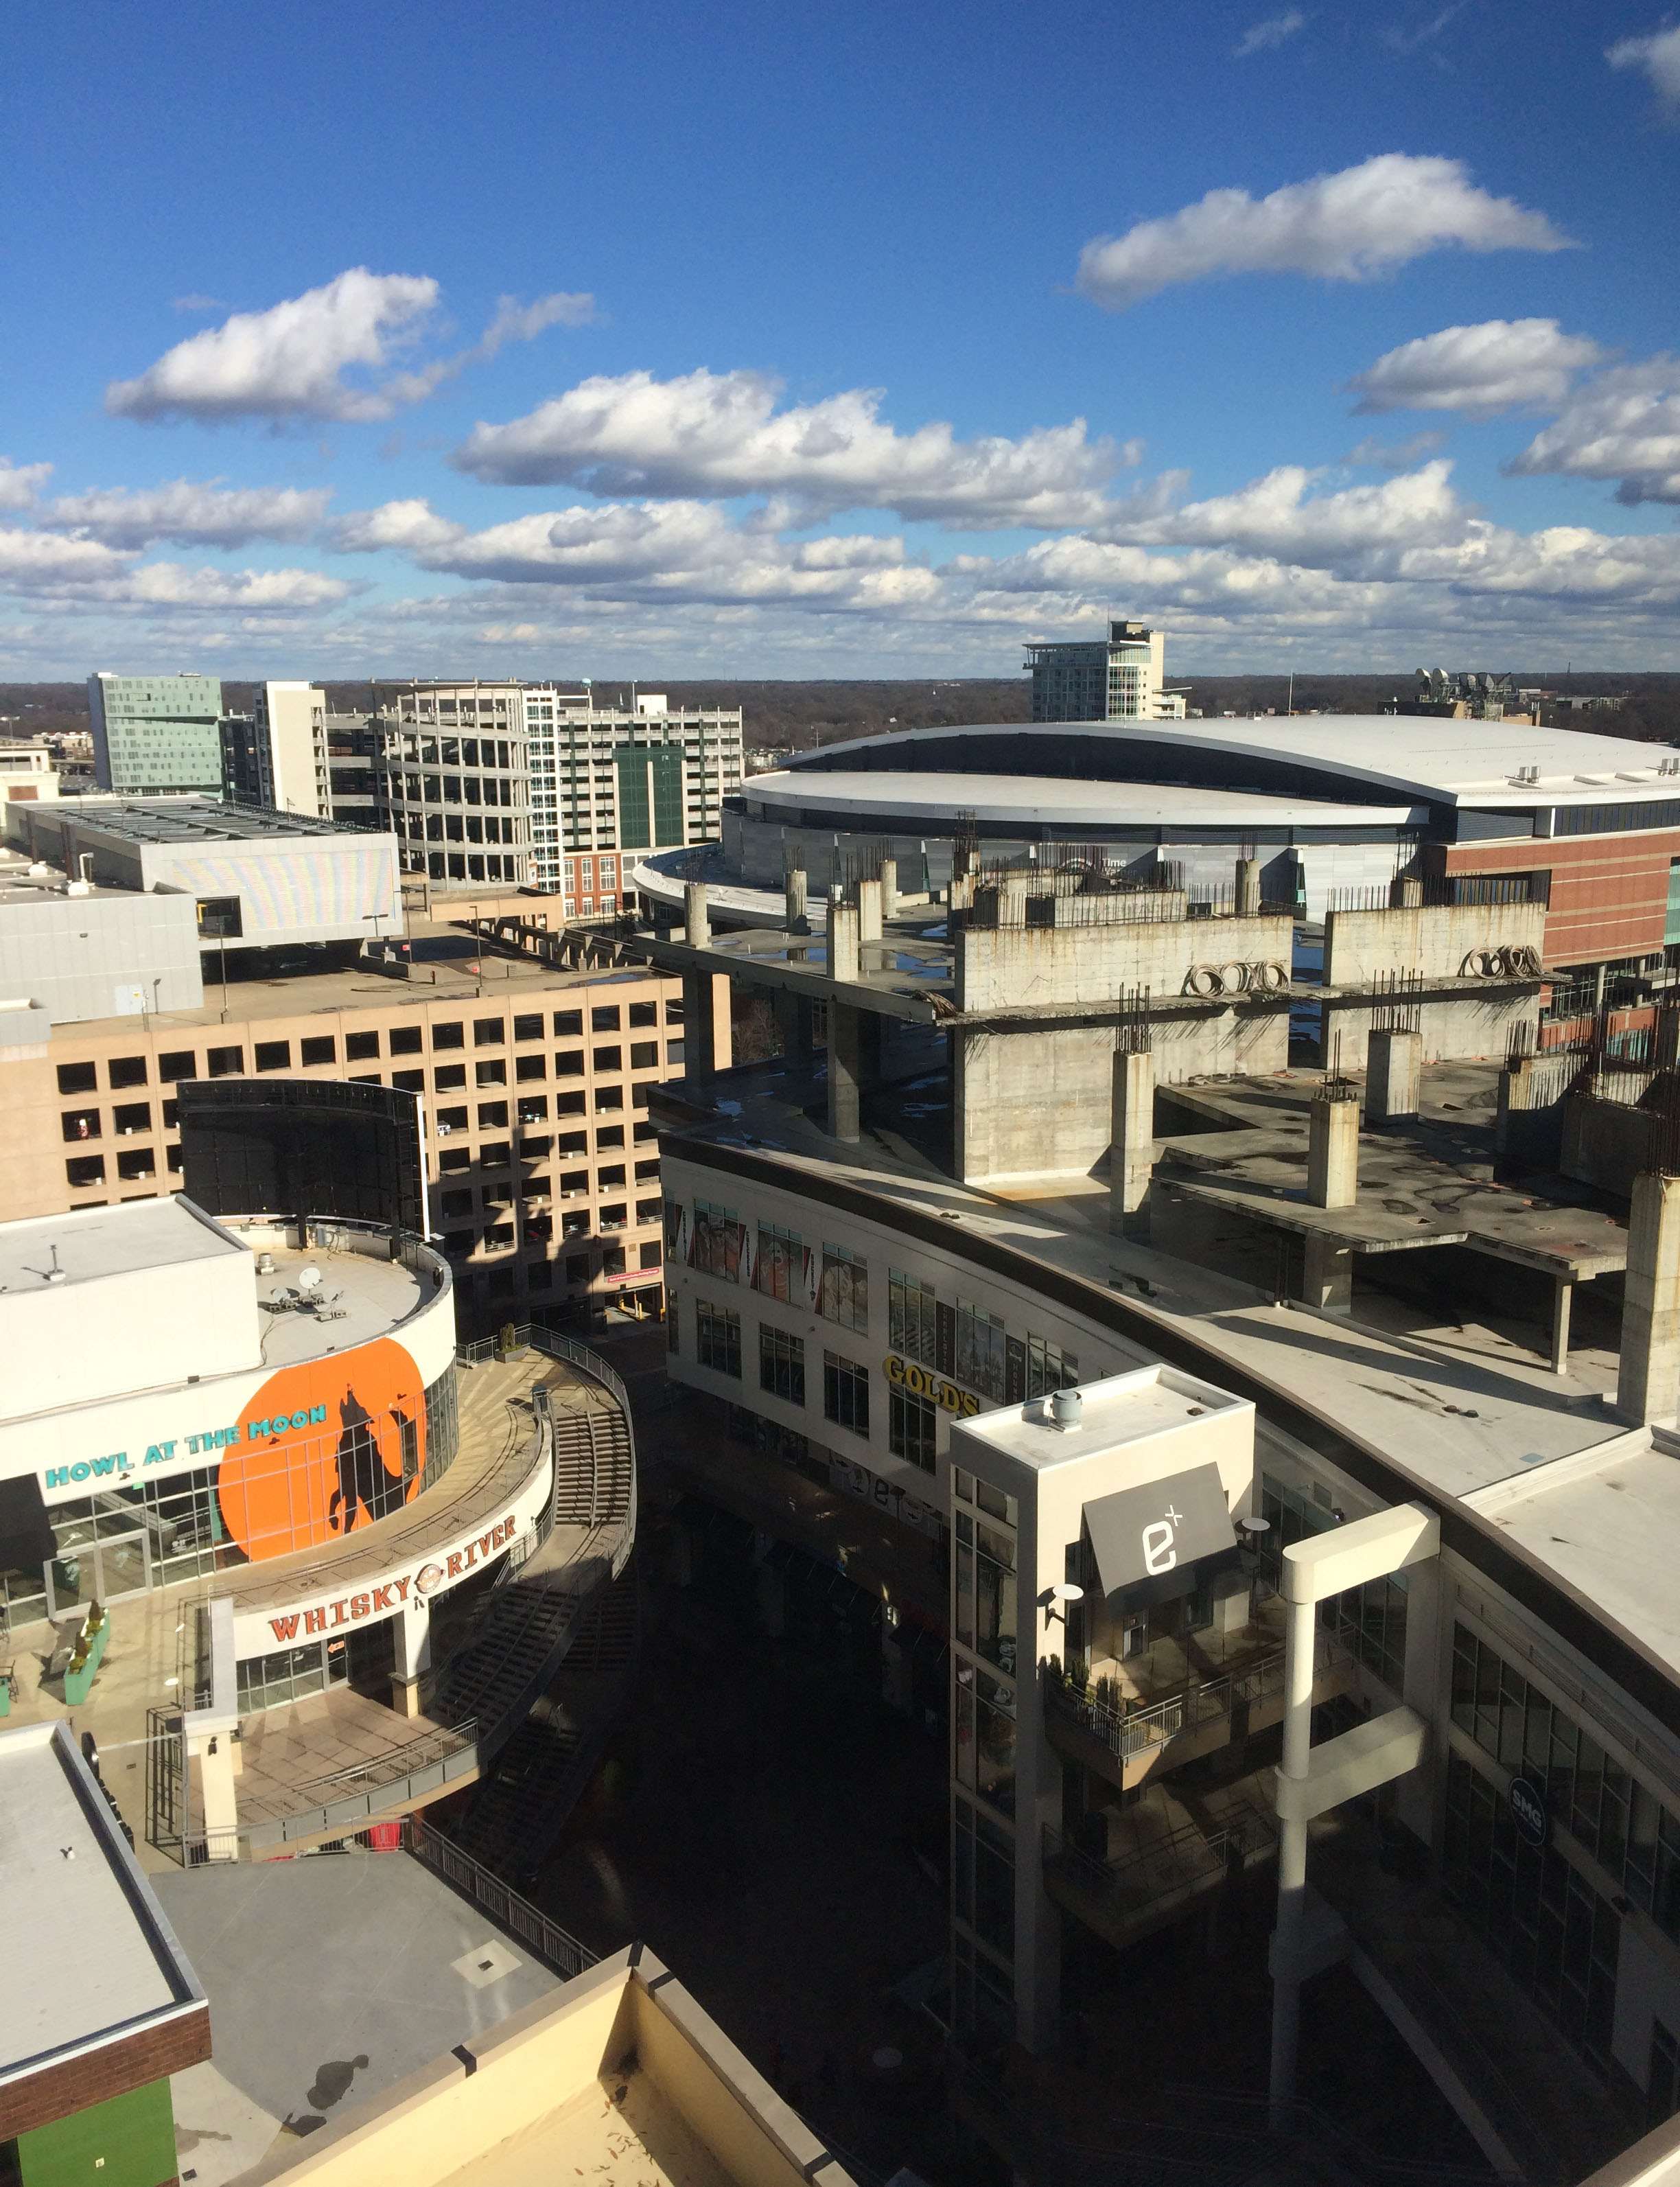 This was our view from our hotel room. You can see some of the Epicentre and Time Warner Arena.